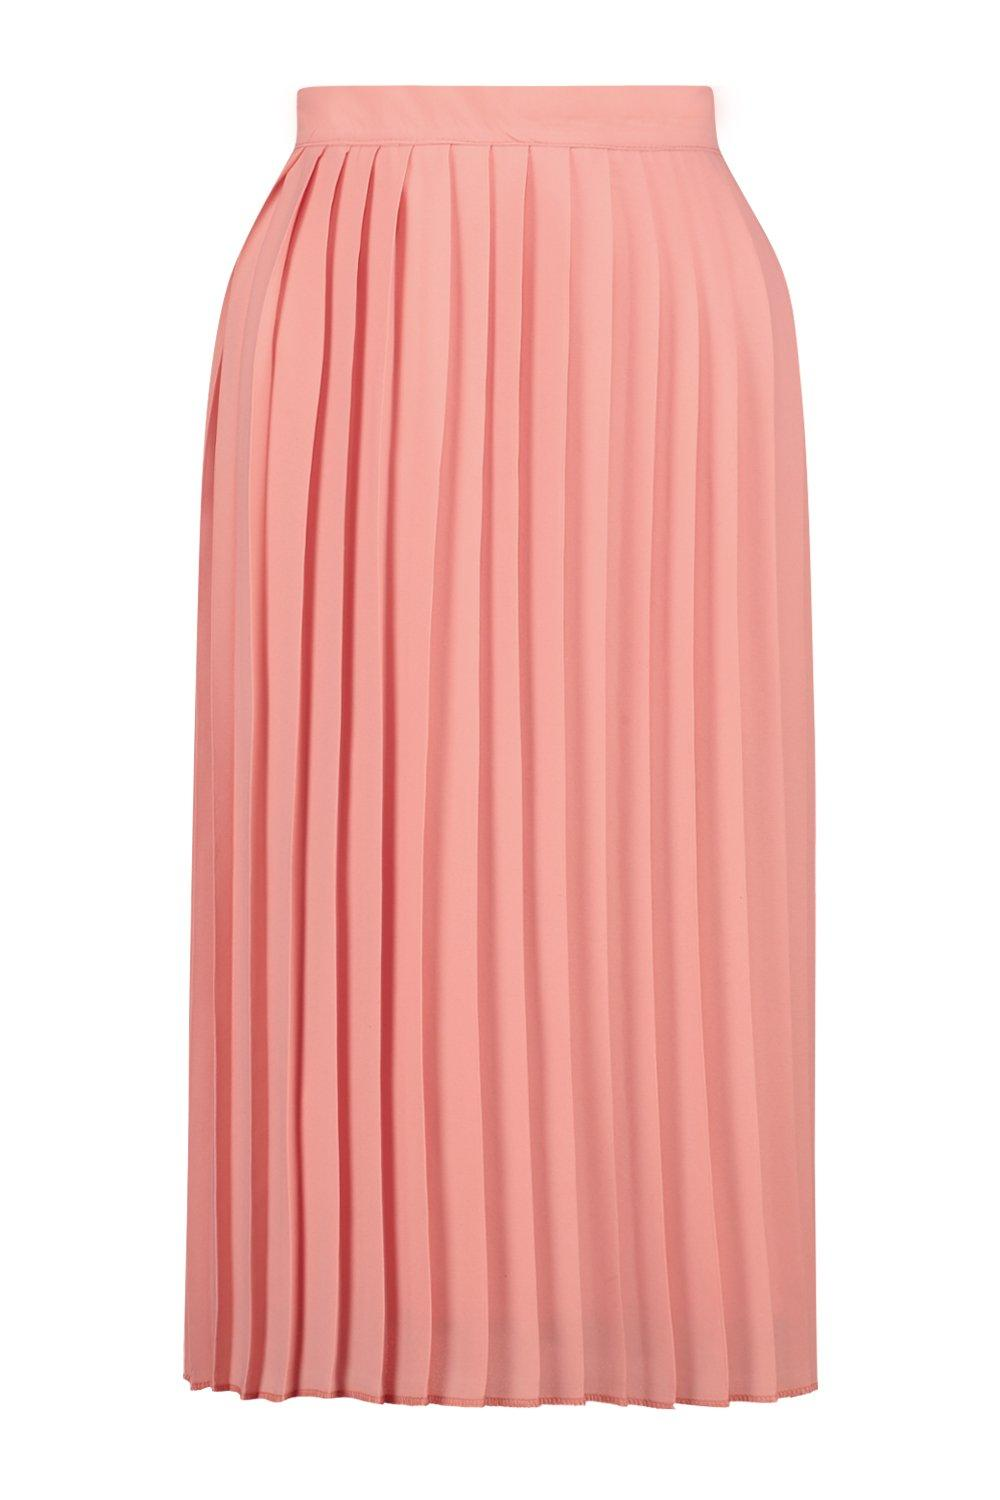 1920s Style Skirts Aura Chiffon Pleated Midi Skirt sugar-coral $26.00 AT vintagedancer.com